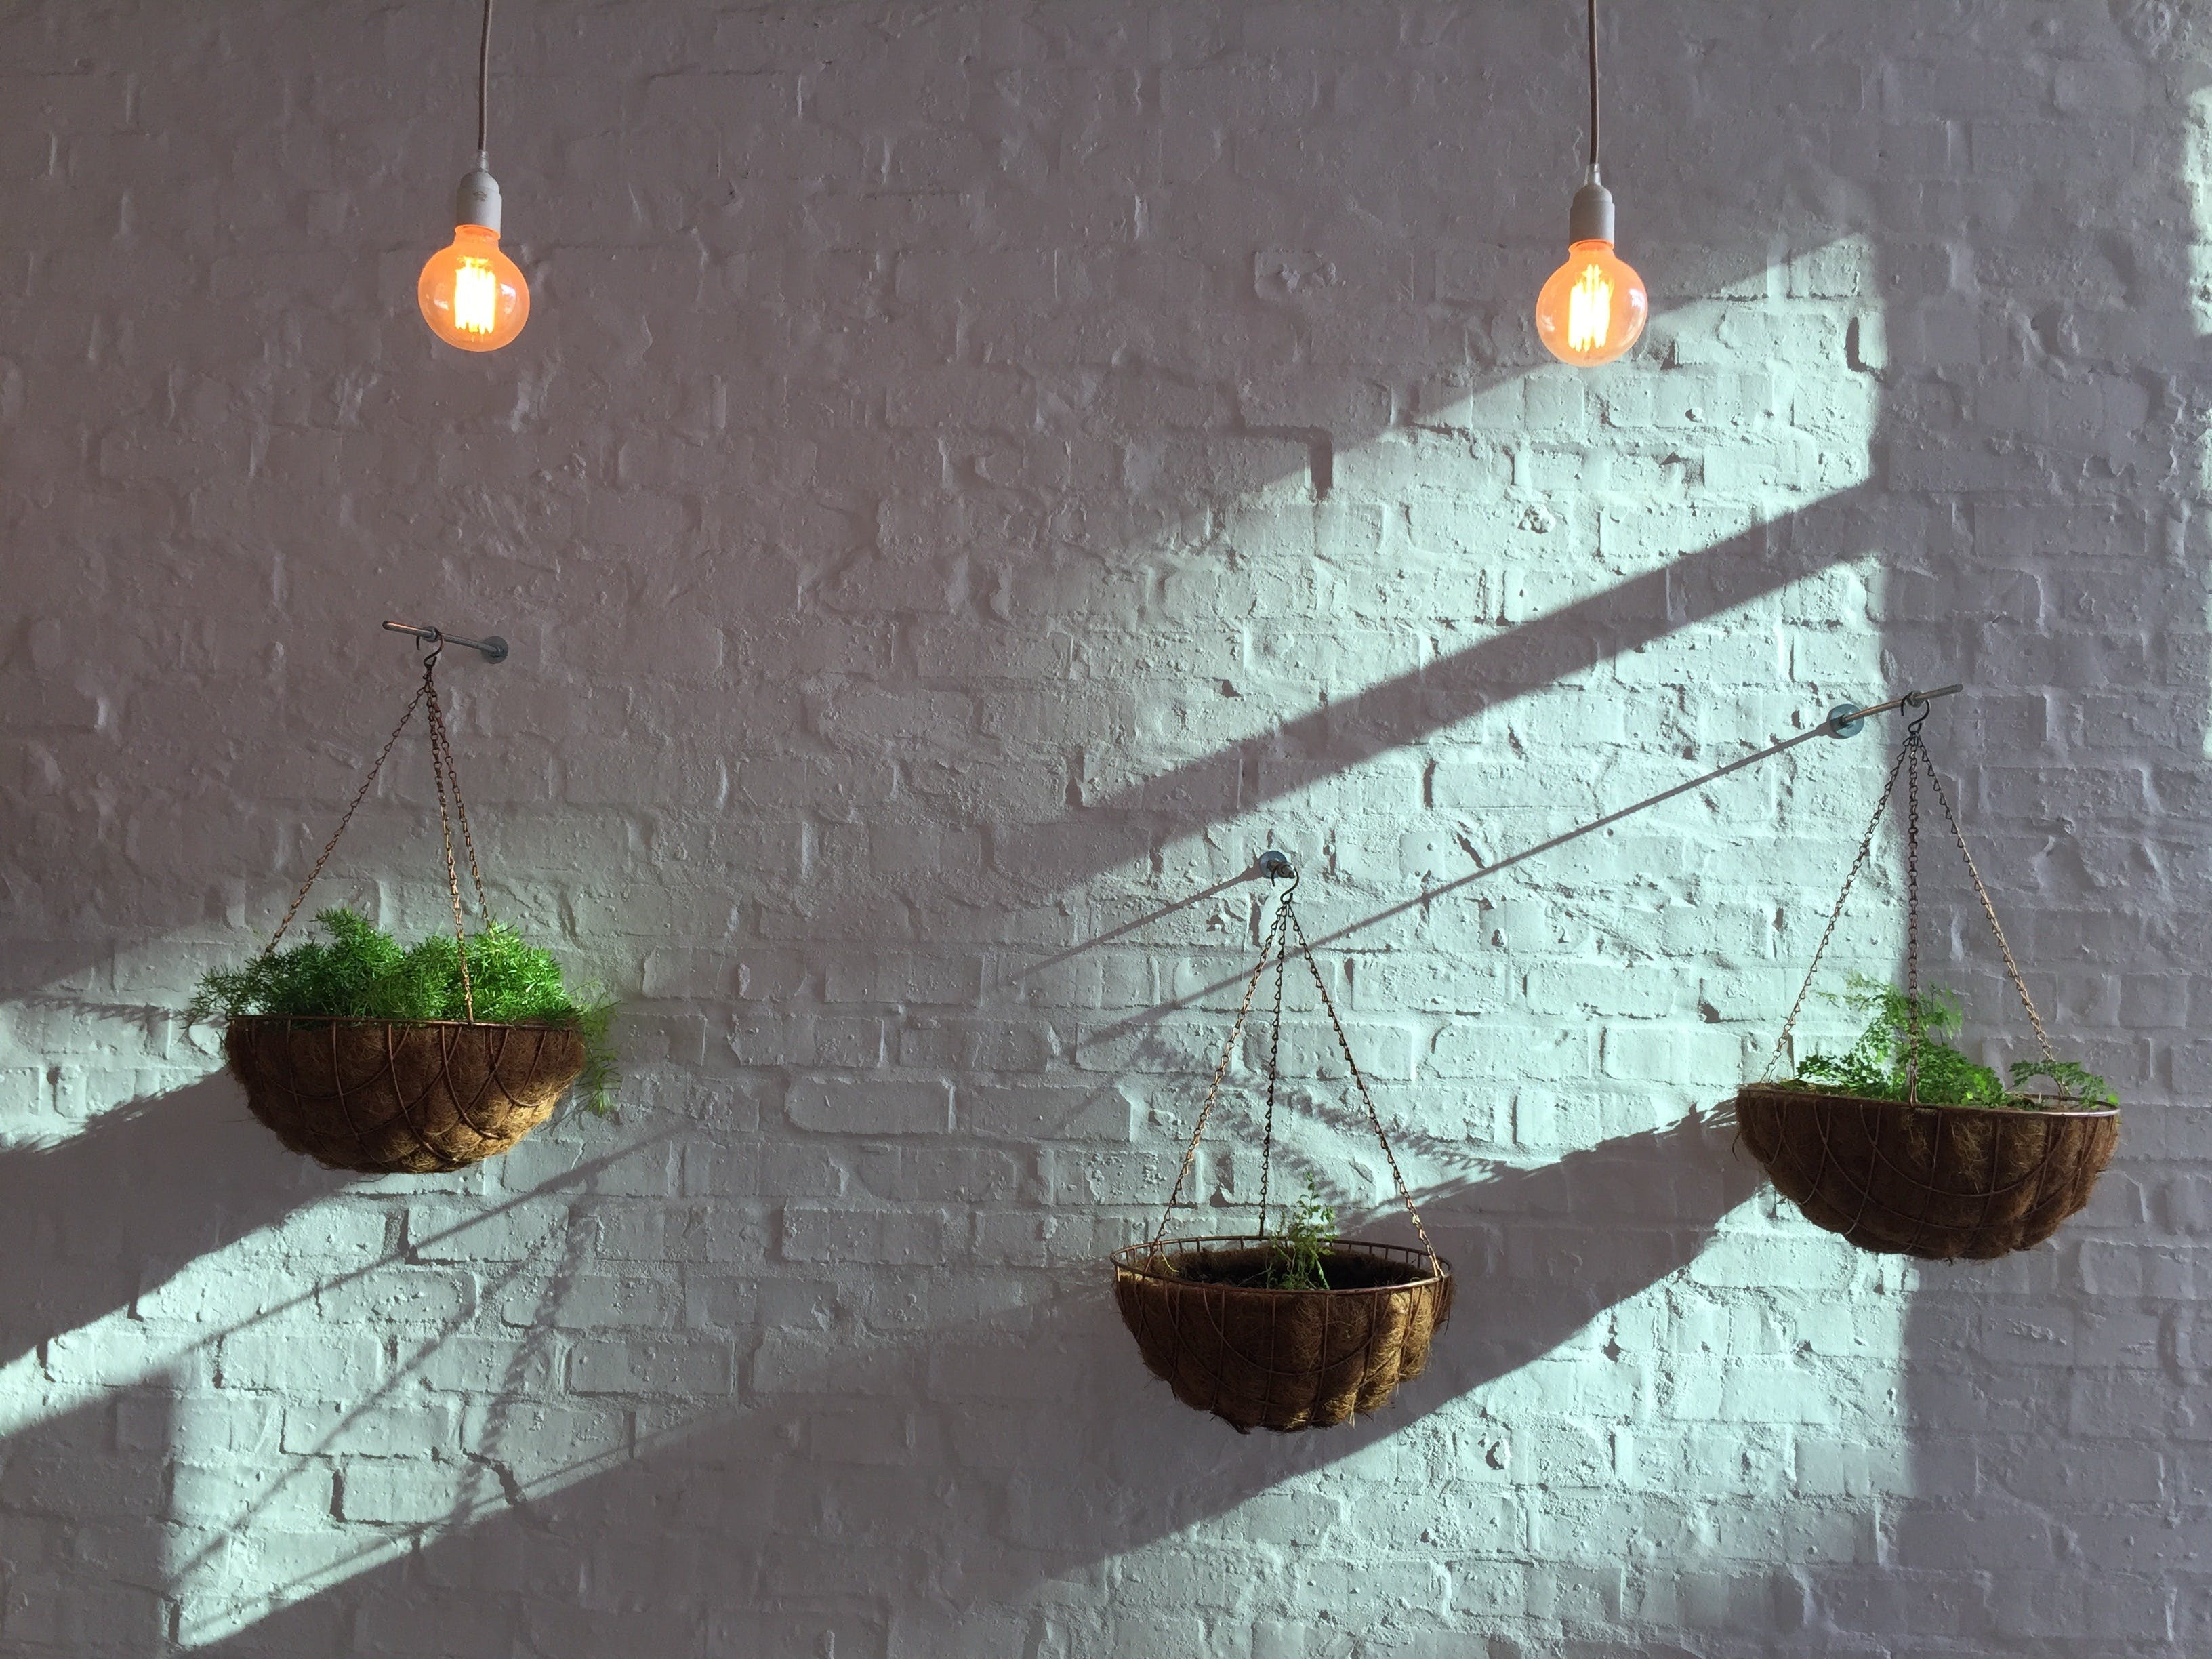 Free stock photo of lights, wall, morning, plants